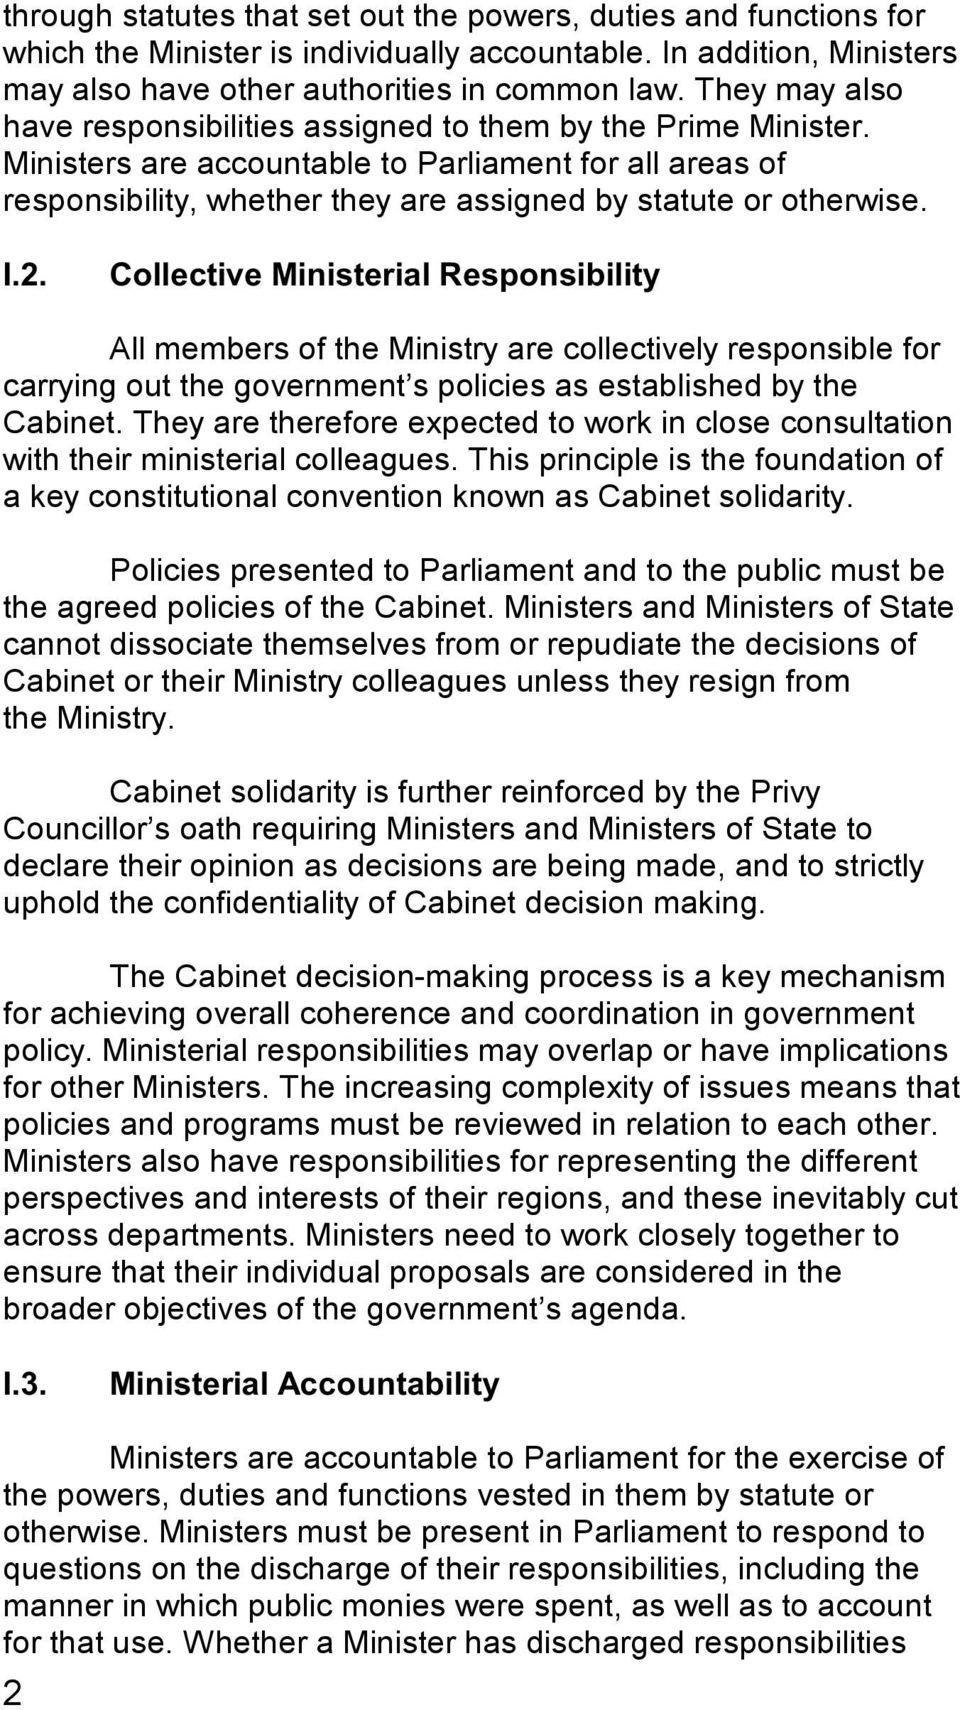 the council of ministers is collectively responsible to